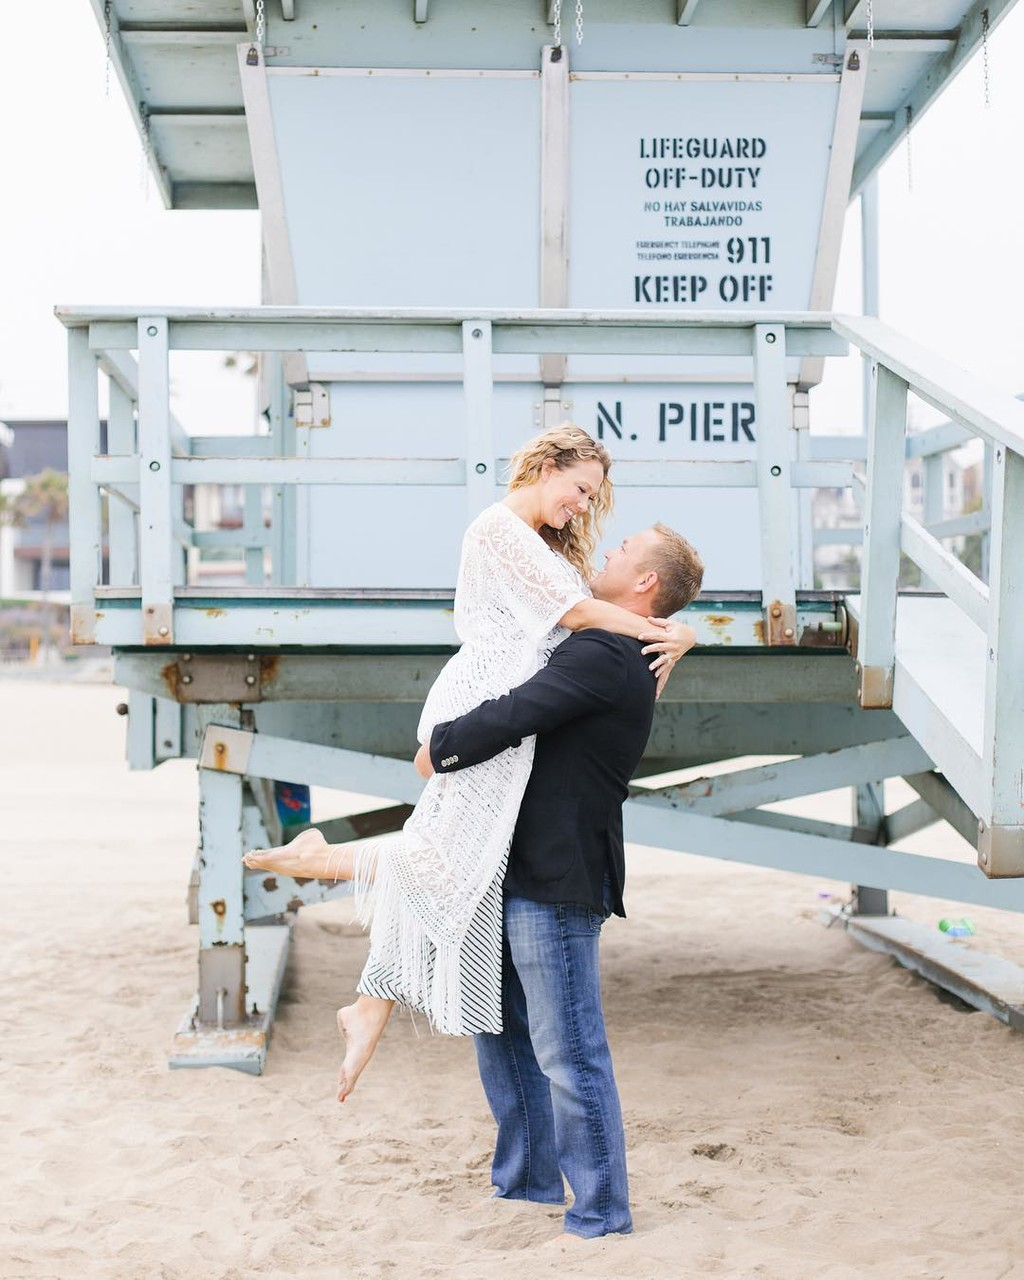 Sneak peek of this fun Manhattan Beach engagement session! 🎉I've known Jessie since I first moved to LA more than 6 years ago (